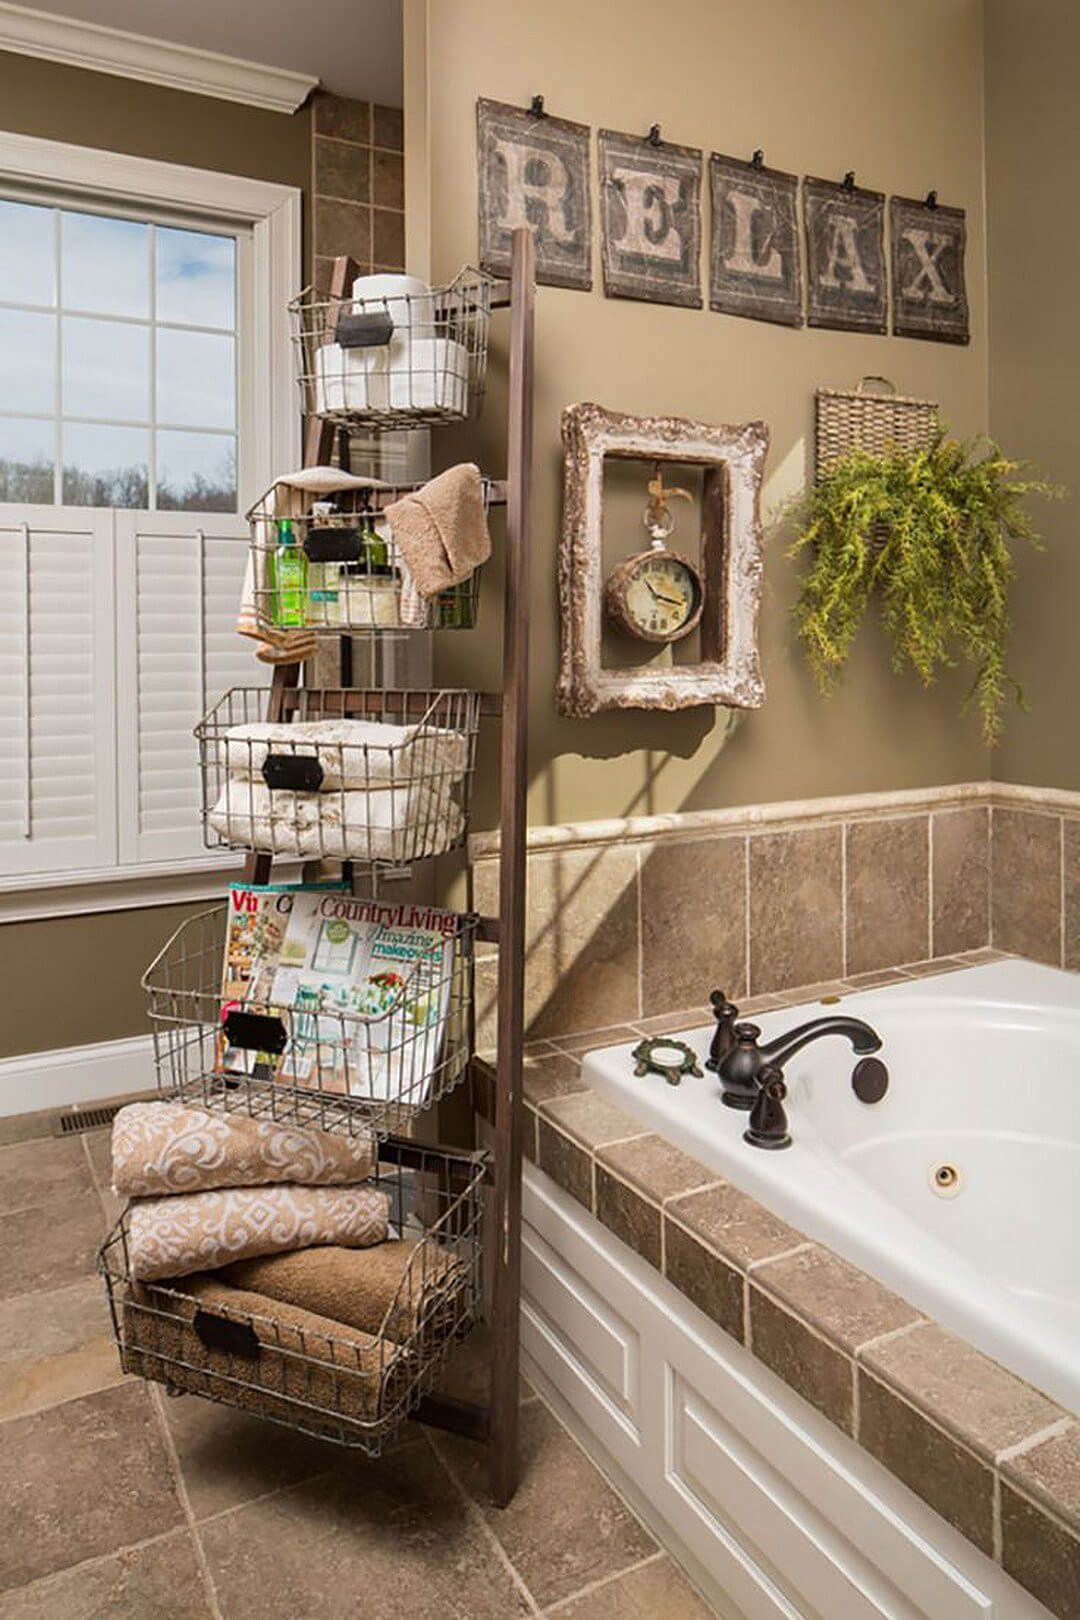 Small Bathroom Towel Storage Ideas Classy 34 Spacesaving Towel Storage Ideas For Your Bathroom  Towels Design Inspiration